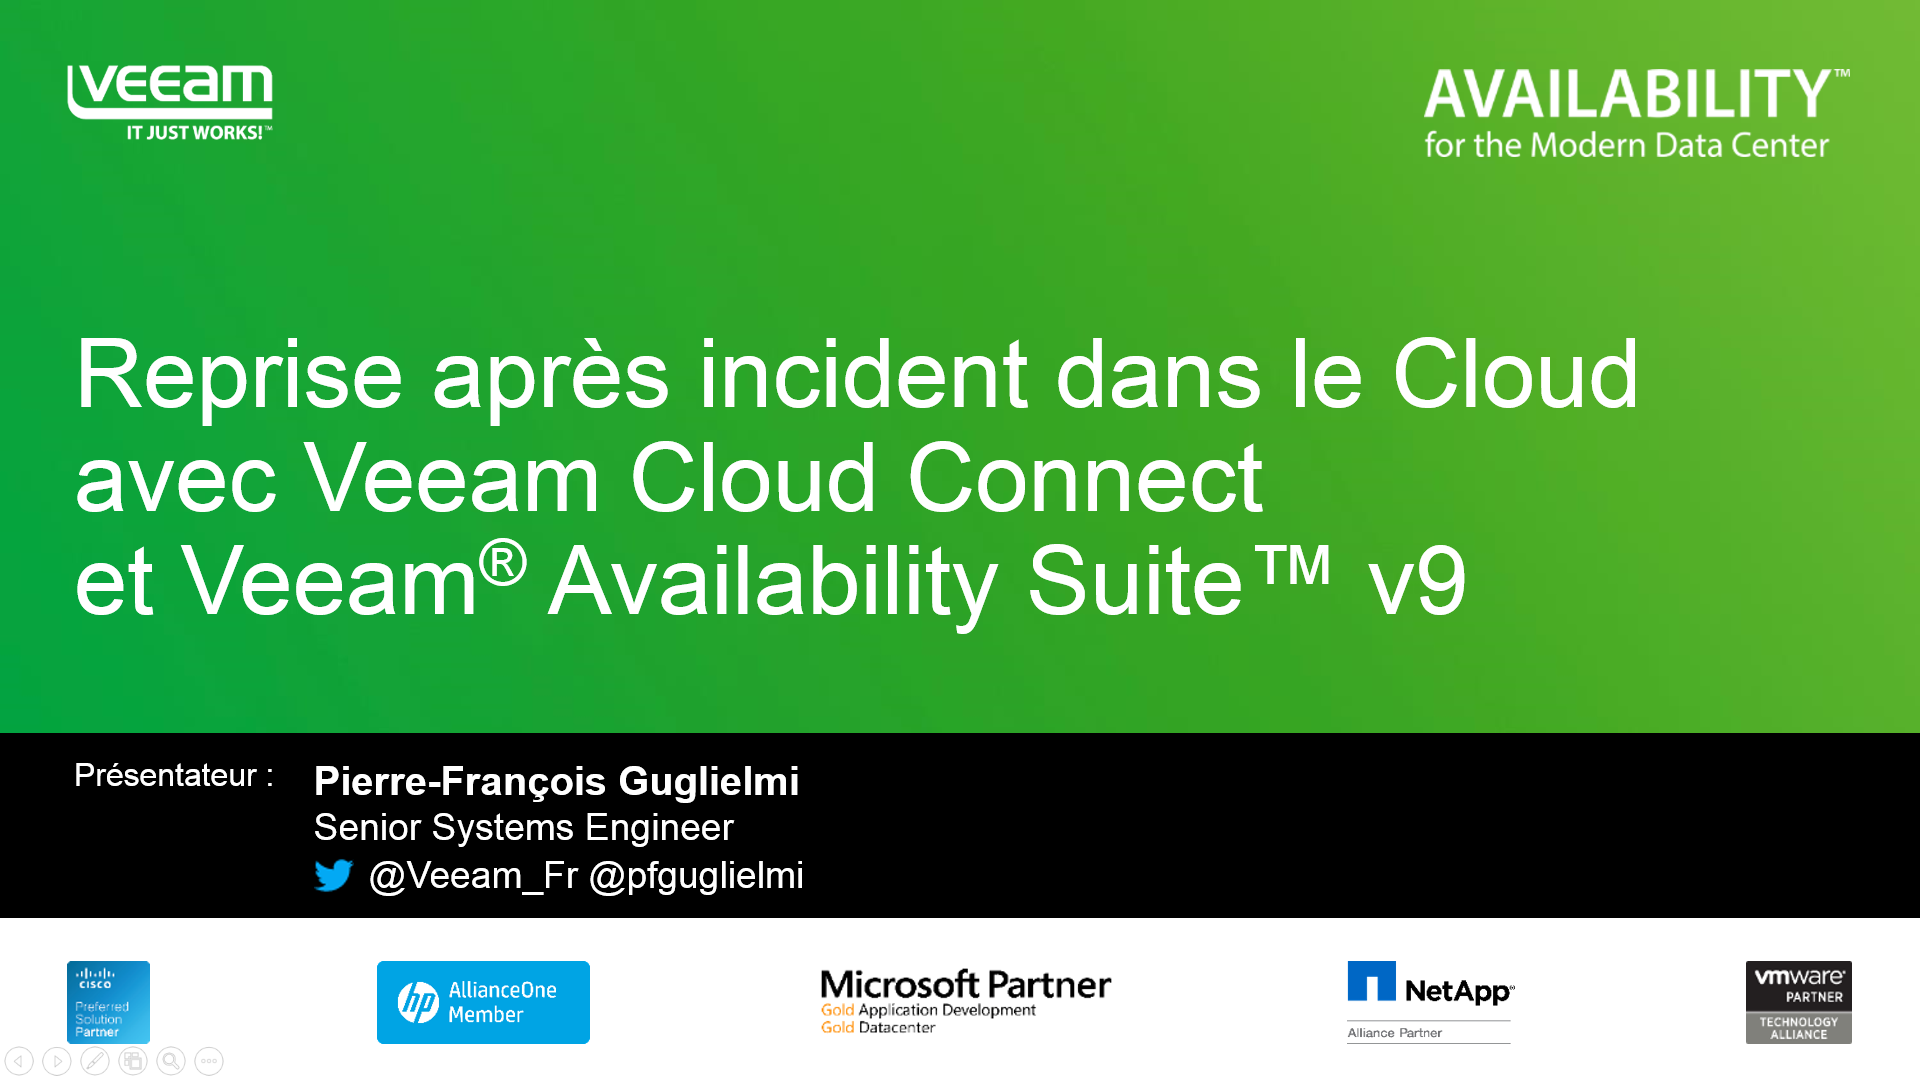 Reprise après incident dans le Cloud avec Veeam Cloud Connect et Veeam® Availability Suite™ v9